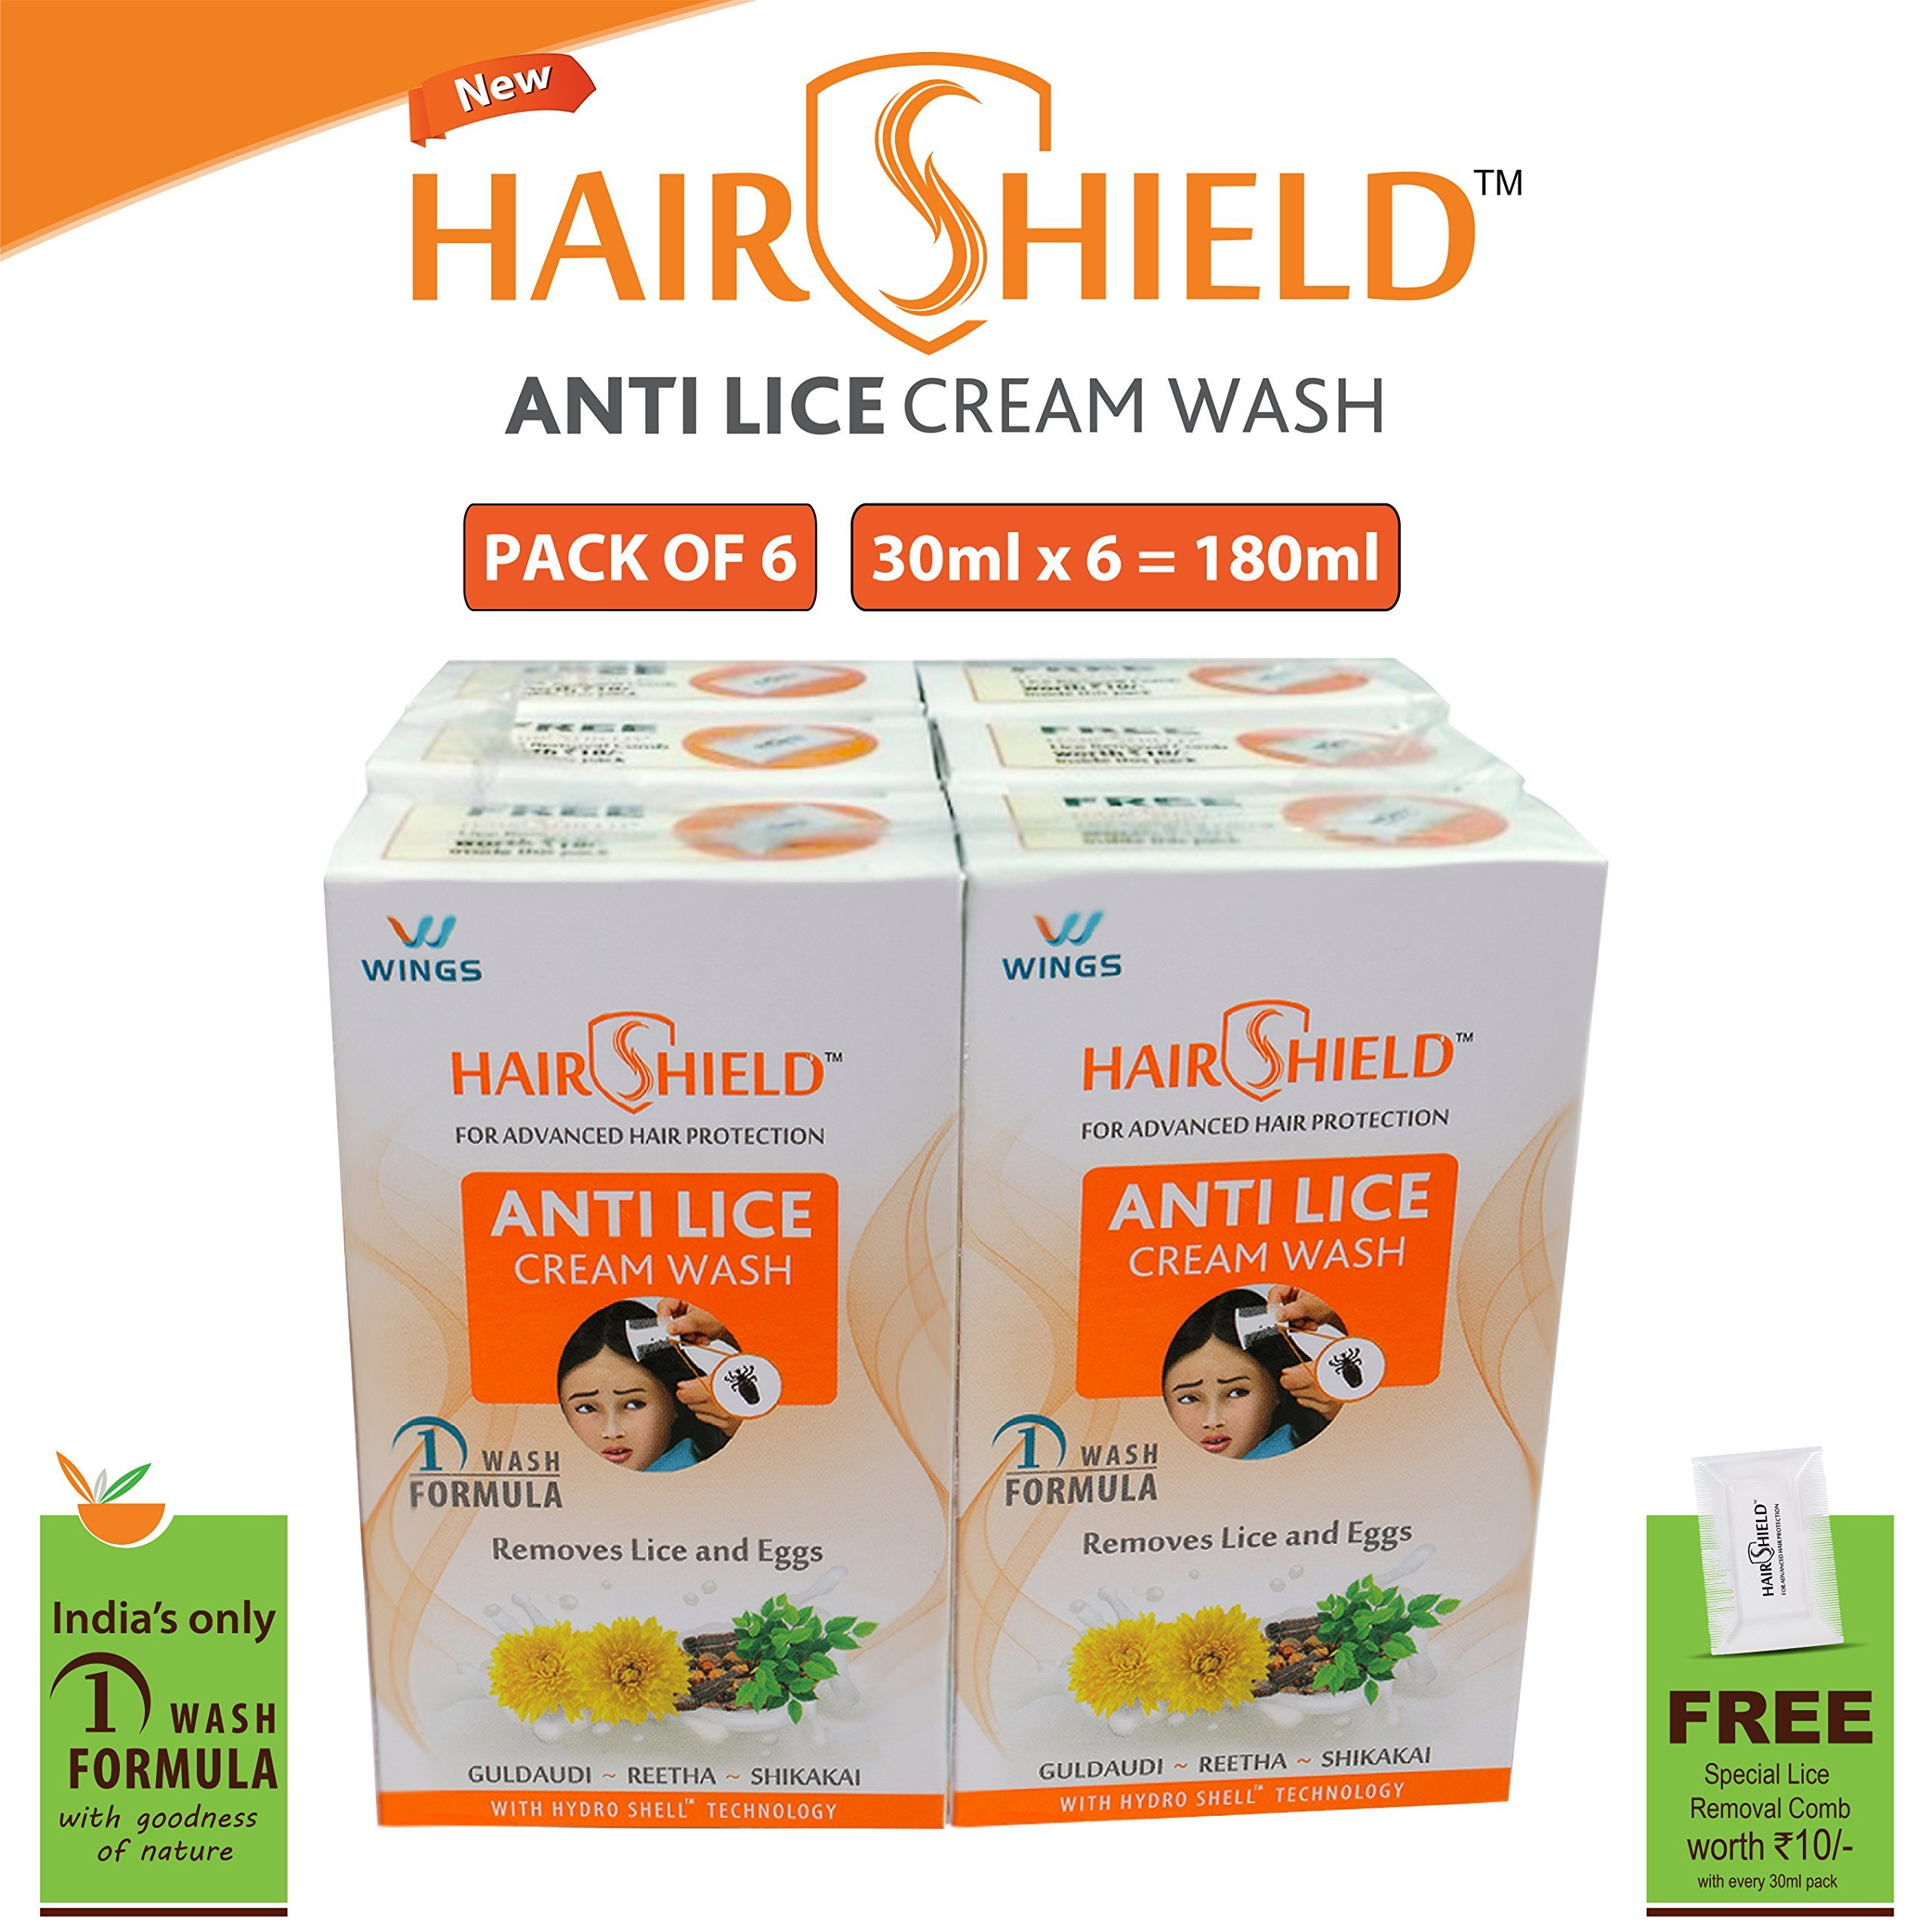 Hairshield Anti Lice Cream Wash 30 Ml X Pack Of 6 = 180 Ml Free Head Lice Comb With Every Pack product image